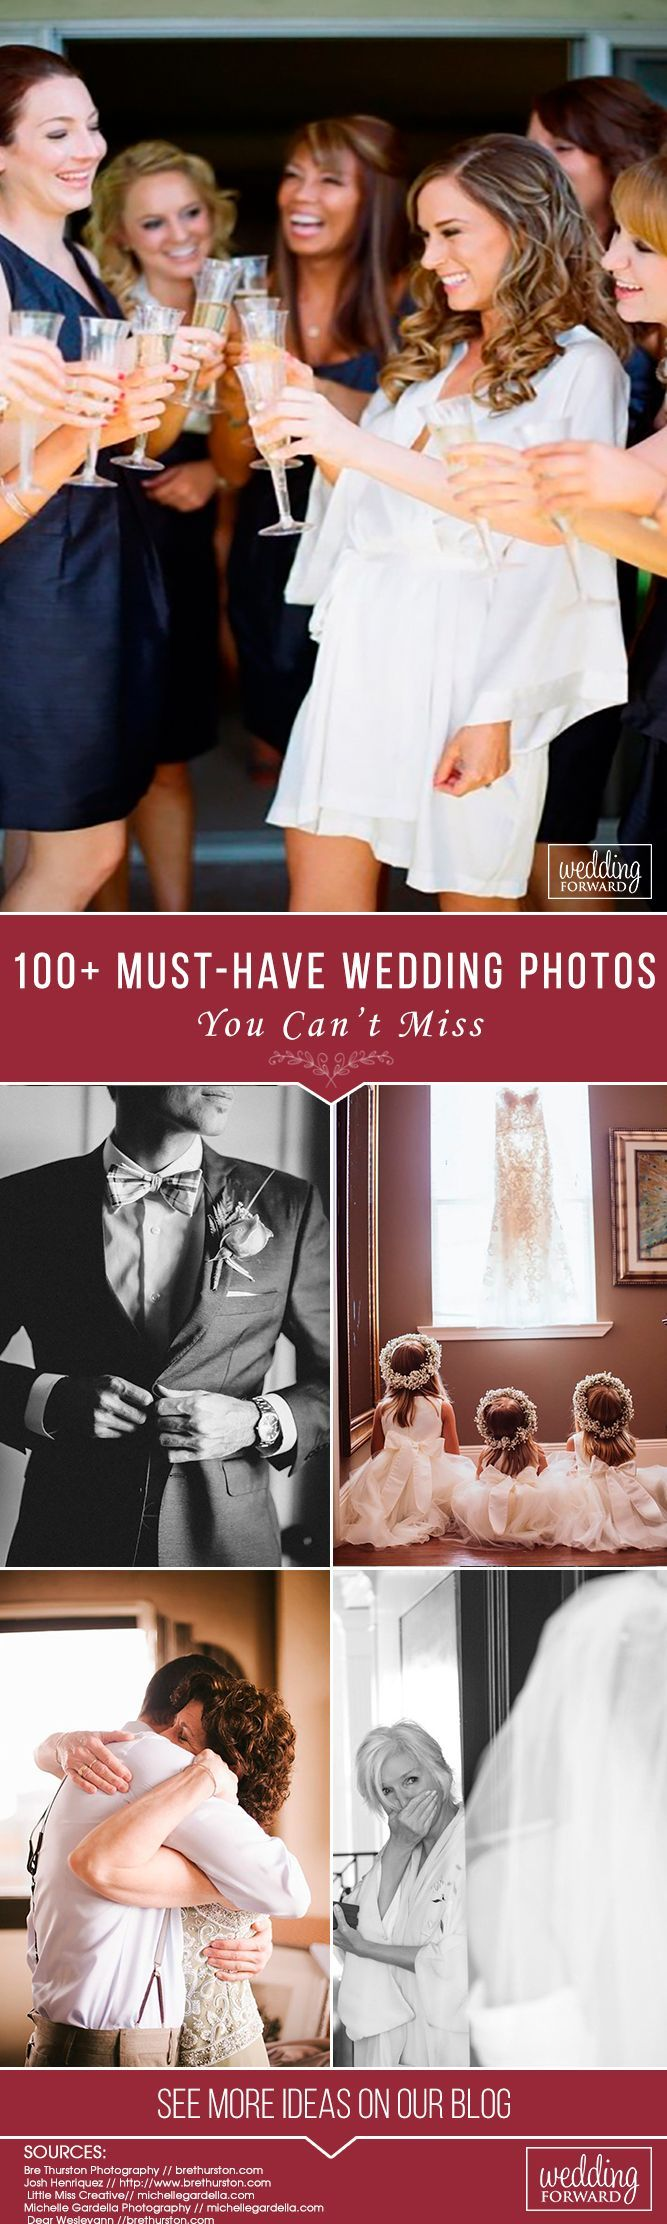 100+ Must-Have Wedding Photos (Ideas Gallery & Tips)Hairstyles ❤️Gallery of absolutely must-have wedding photos to have in your wedding pictures album. Build your checklist and share these with your wedding photographer. See more: http://www.weddingforward.com/must-have-wedding-photos/